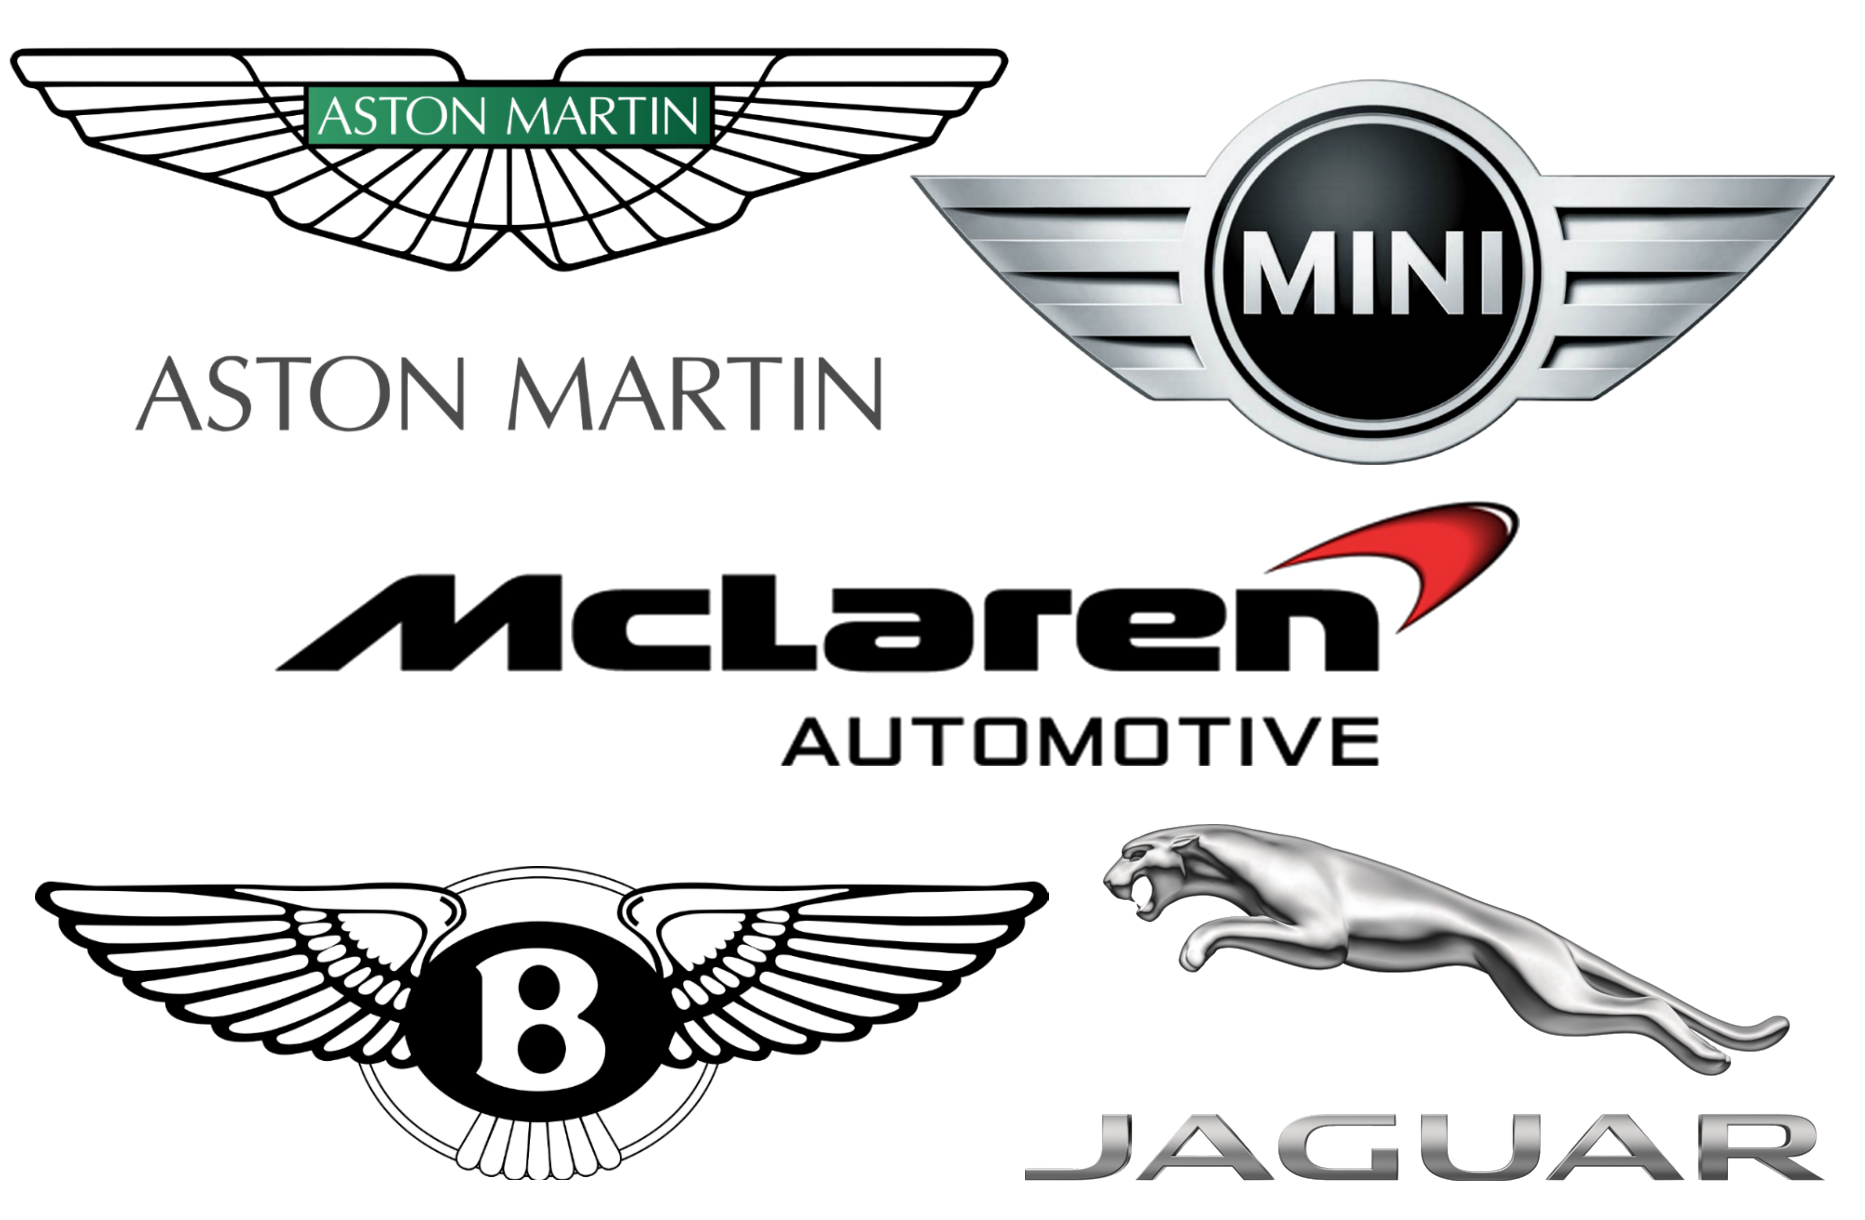 British Car Brands Companies And Manufacturers Car Brand Names Com